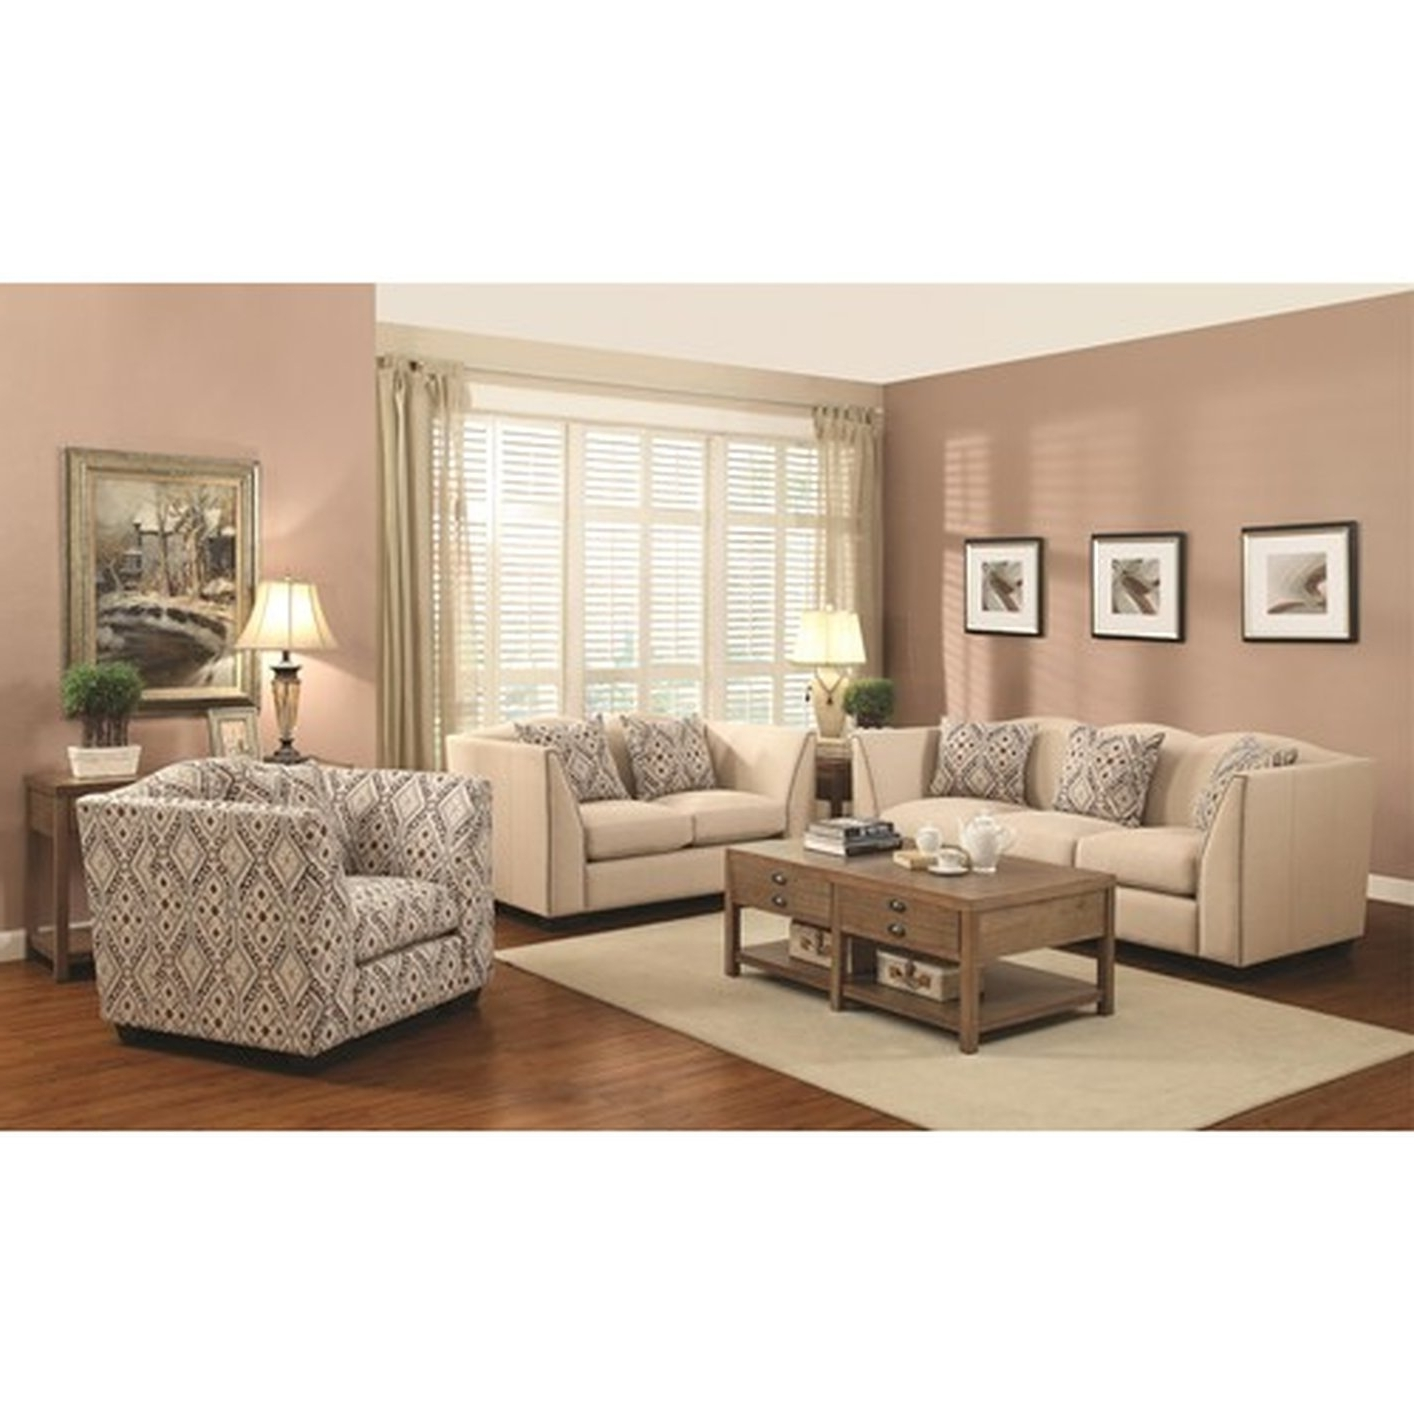 Most Popular Sofa And Accent Chair Sets Inside Siana Beige Fabric Accent Chair – Steal A Sofa Furniture Outlet (View 10 of 20)